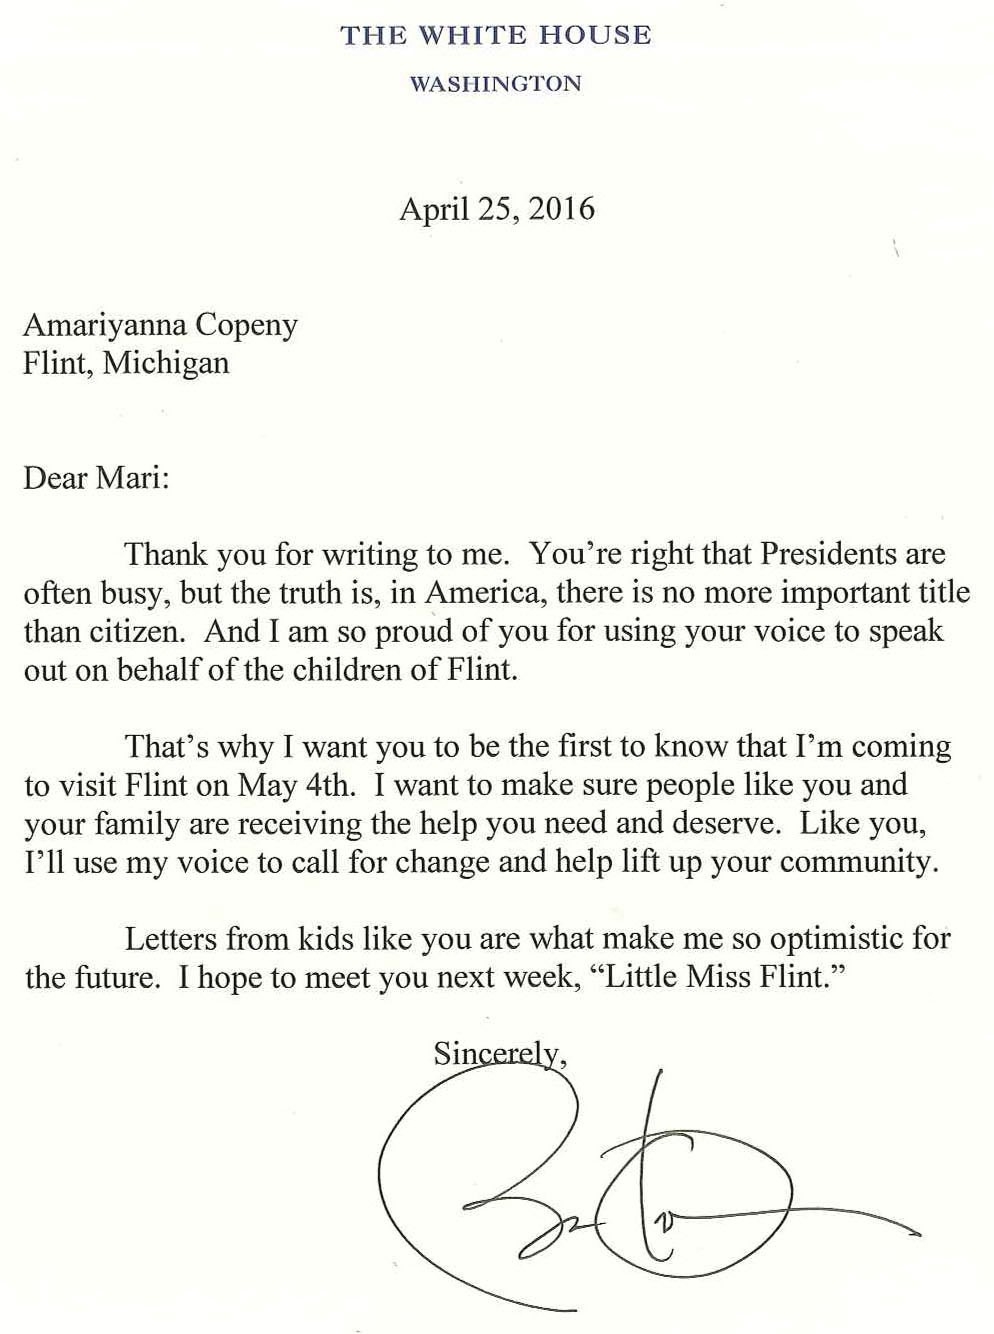 Asked and Answered: President Obama Responds to an Eight Year Old